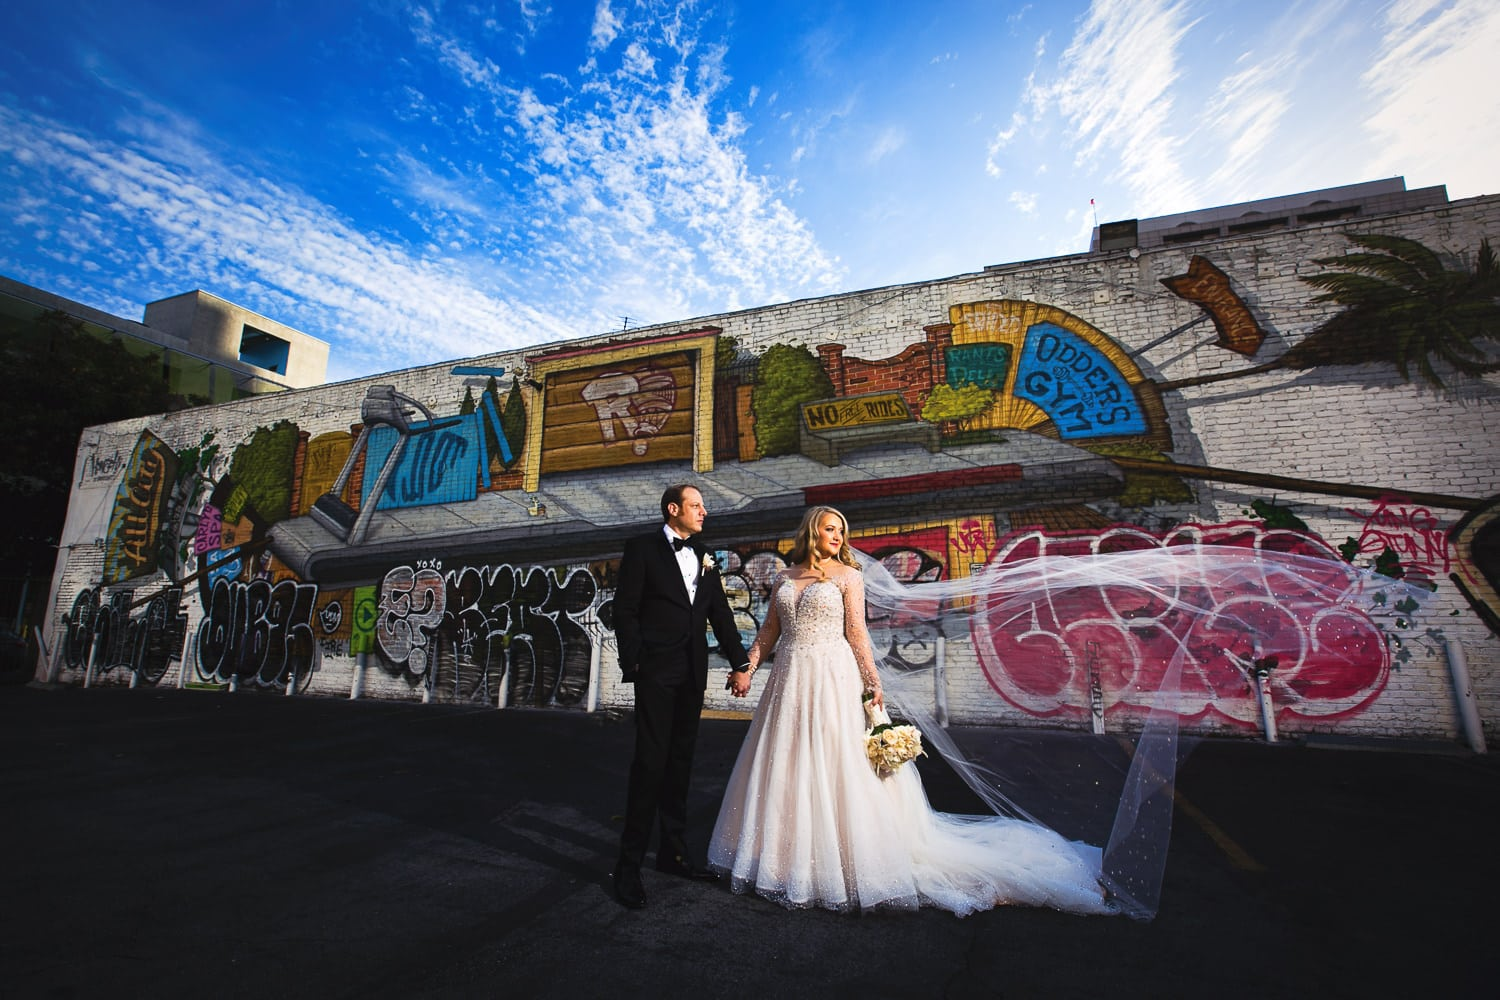 vibiana-wedding-photo-with-street-art.jpg